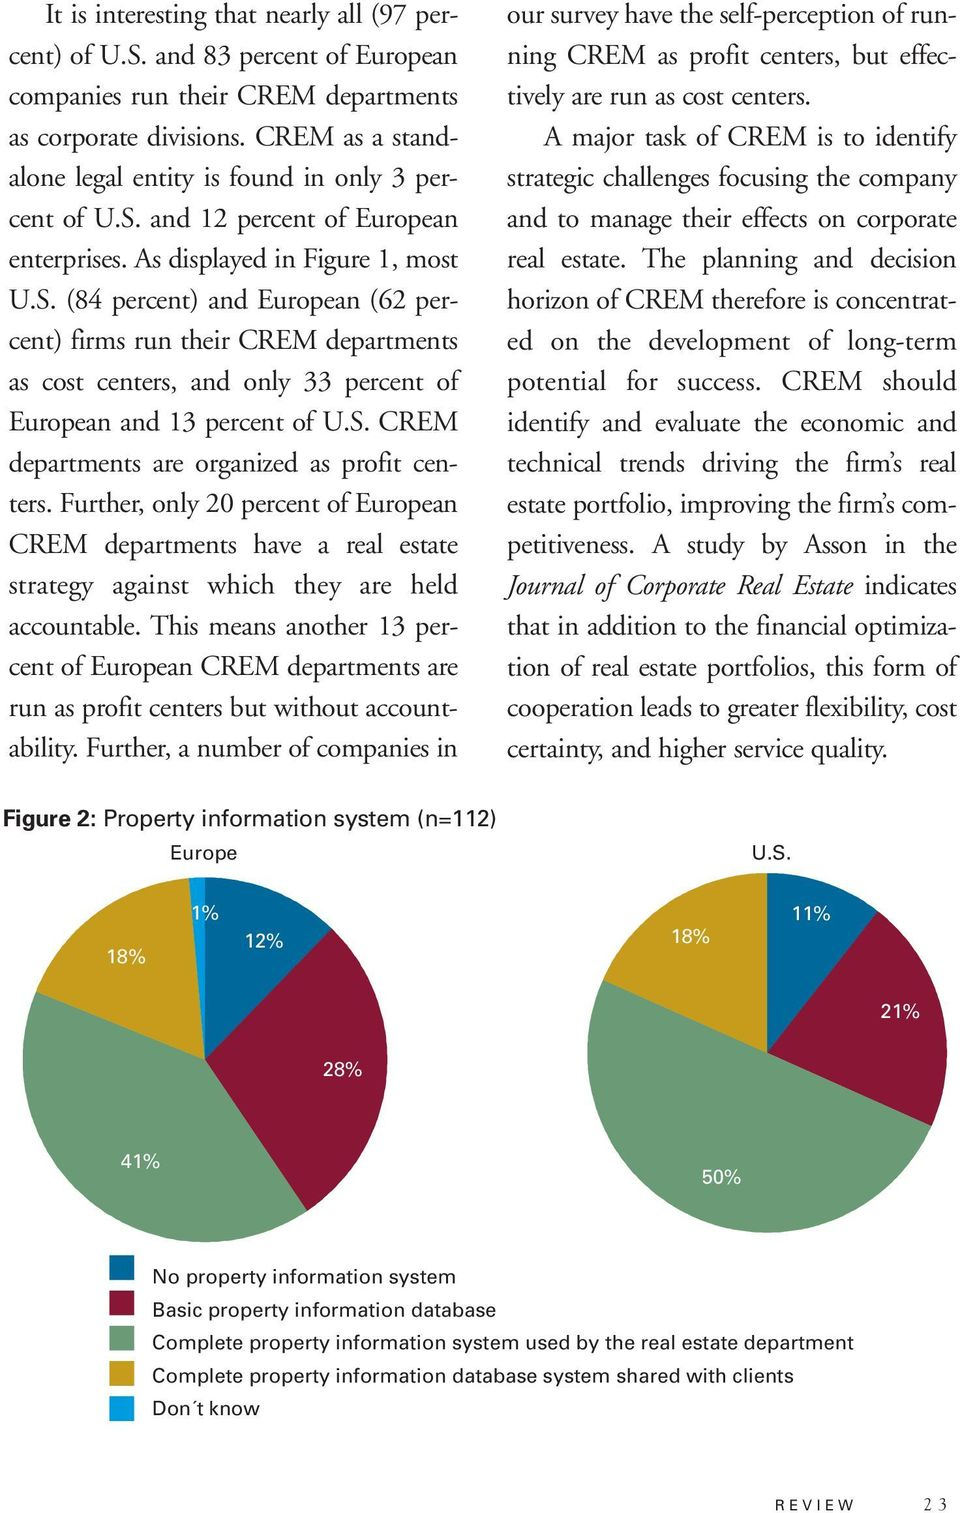 As displayed in Figure 1, most (84 percent) and an (62 percent) firms run their CREM departments as cost centers, and only 33 percent of an and 13 percent of CREM departments are organized as profit